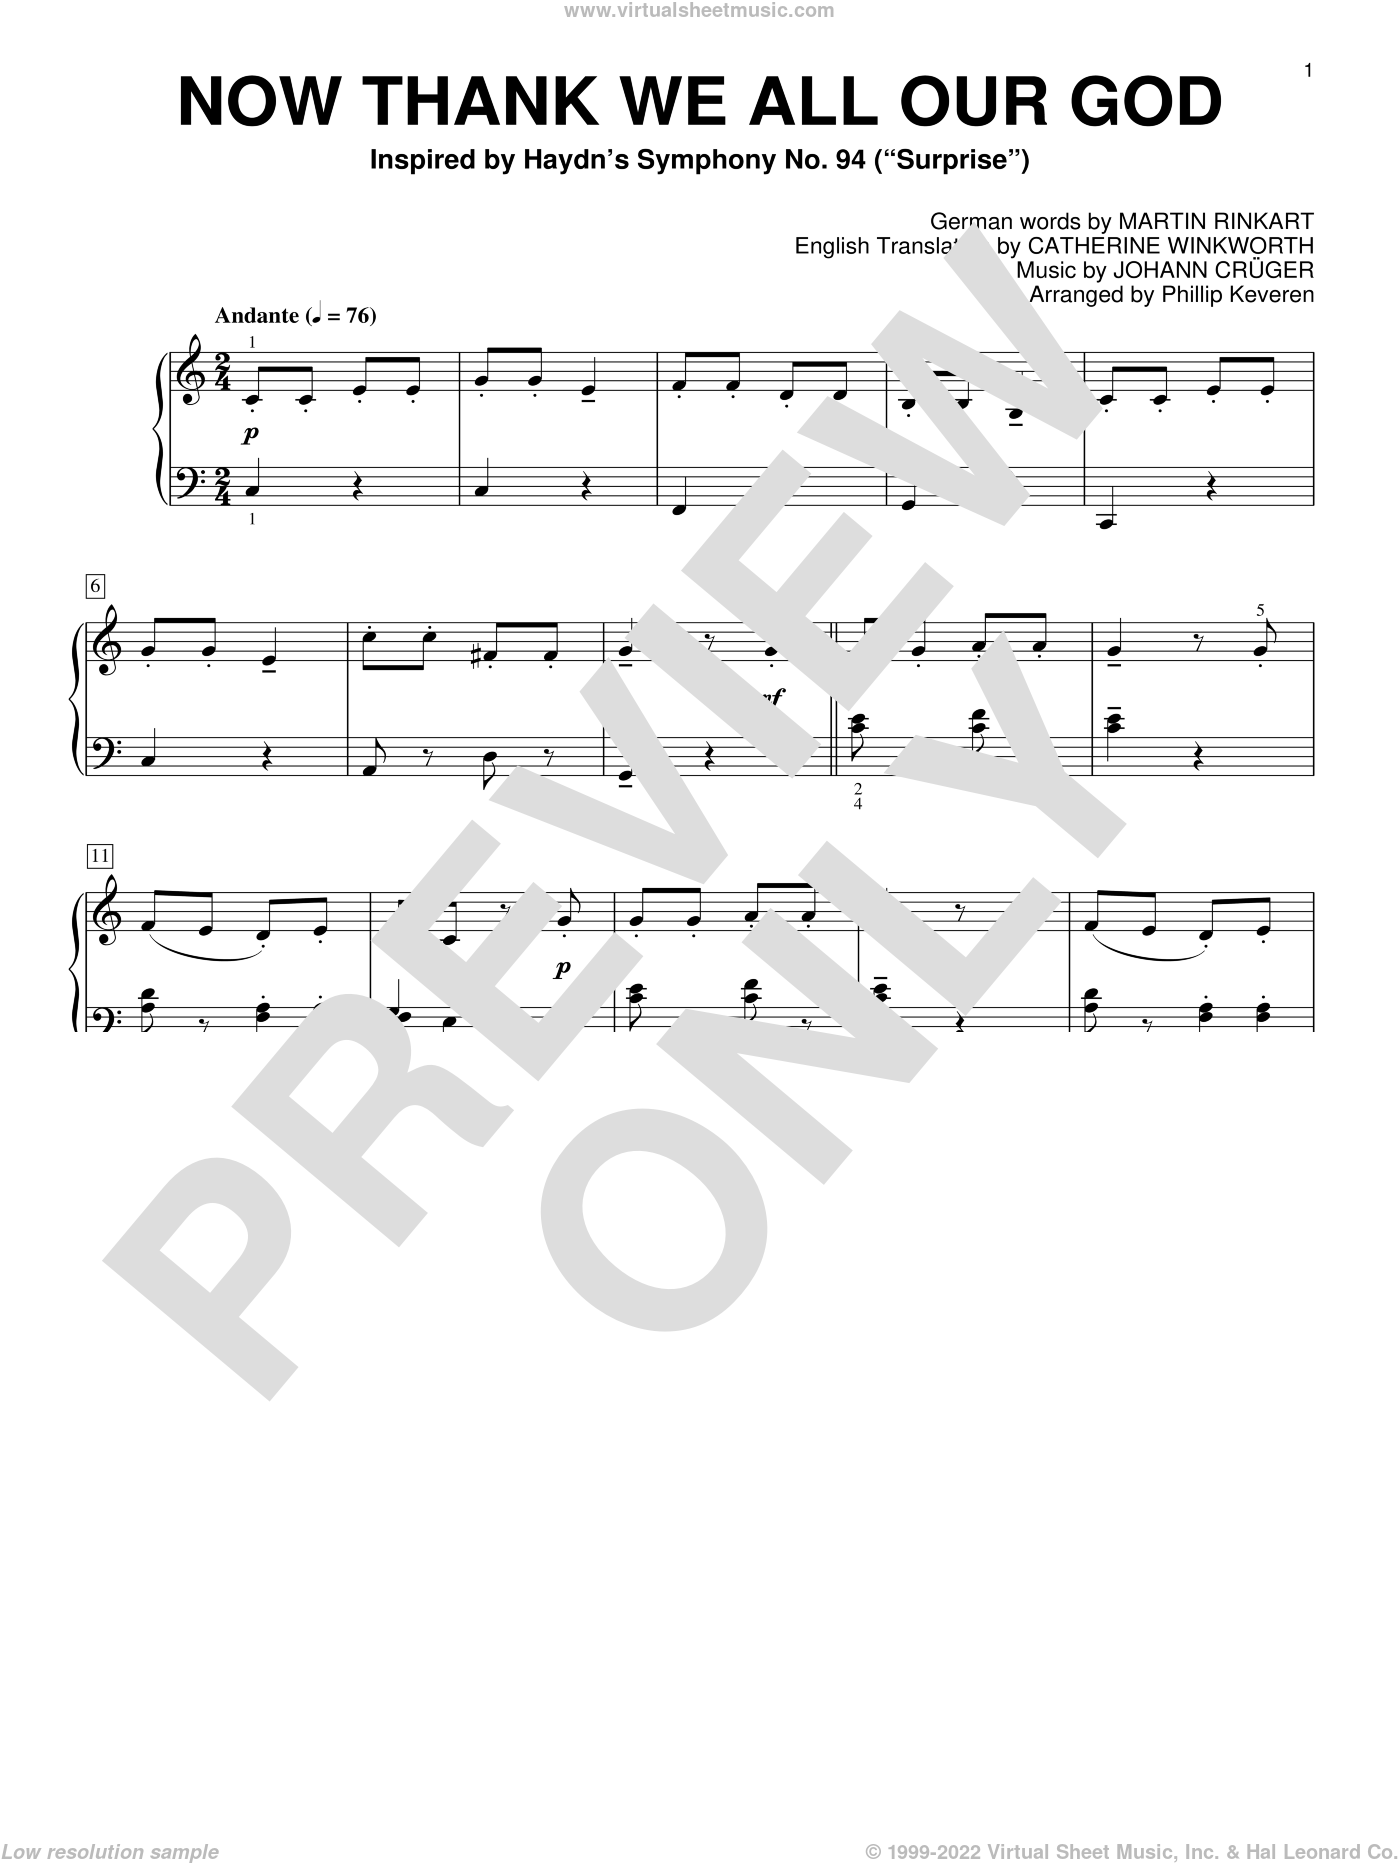 Now Thank We All Our God sheet music for piano solo by Johann Cruger, Phillip Keveren, Catherine Winkworth (Trn.) and Martin Rinkart, intermediate skill level